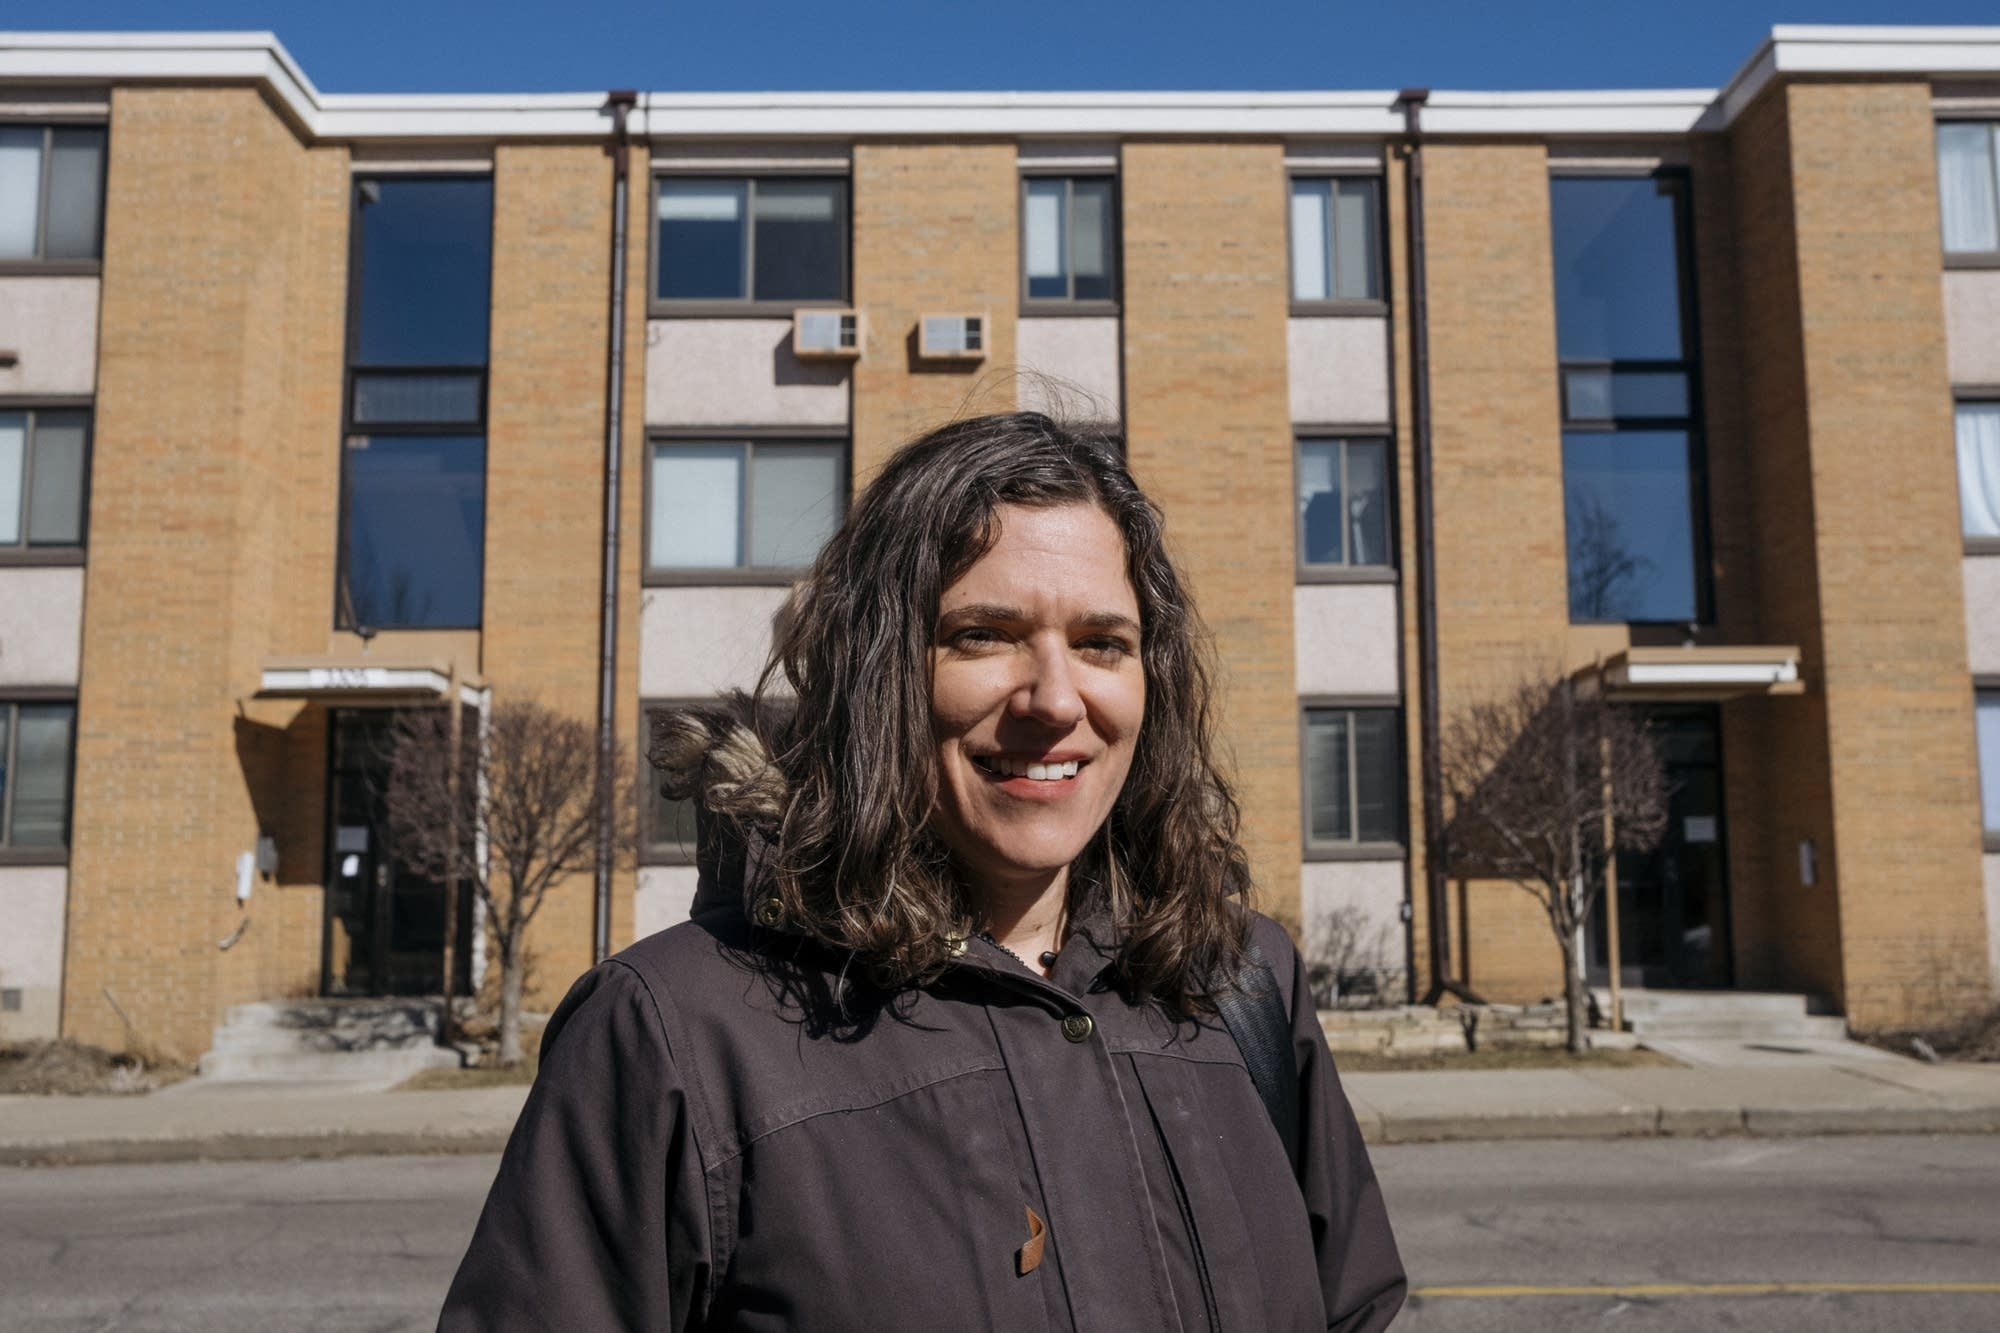 Lisa Bender stands for a portrait in front of an apartment building.